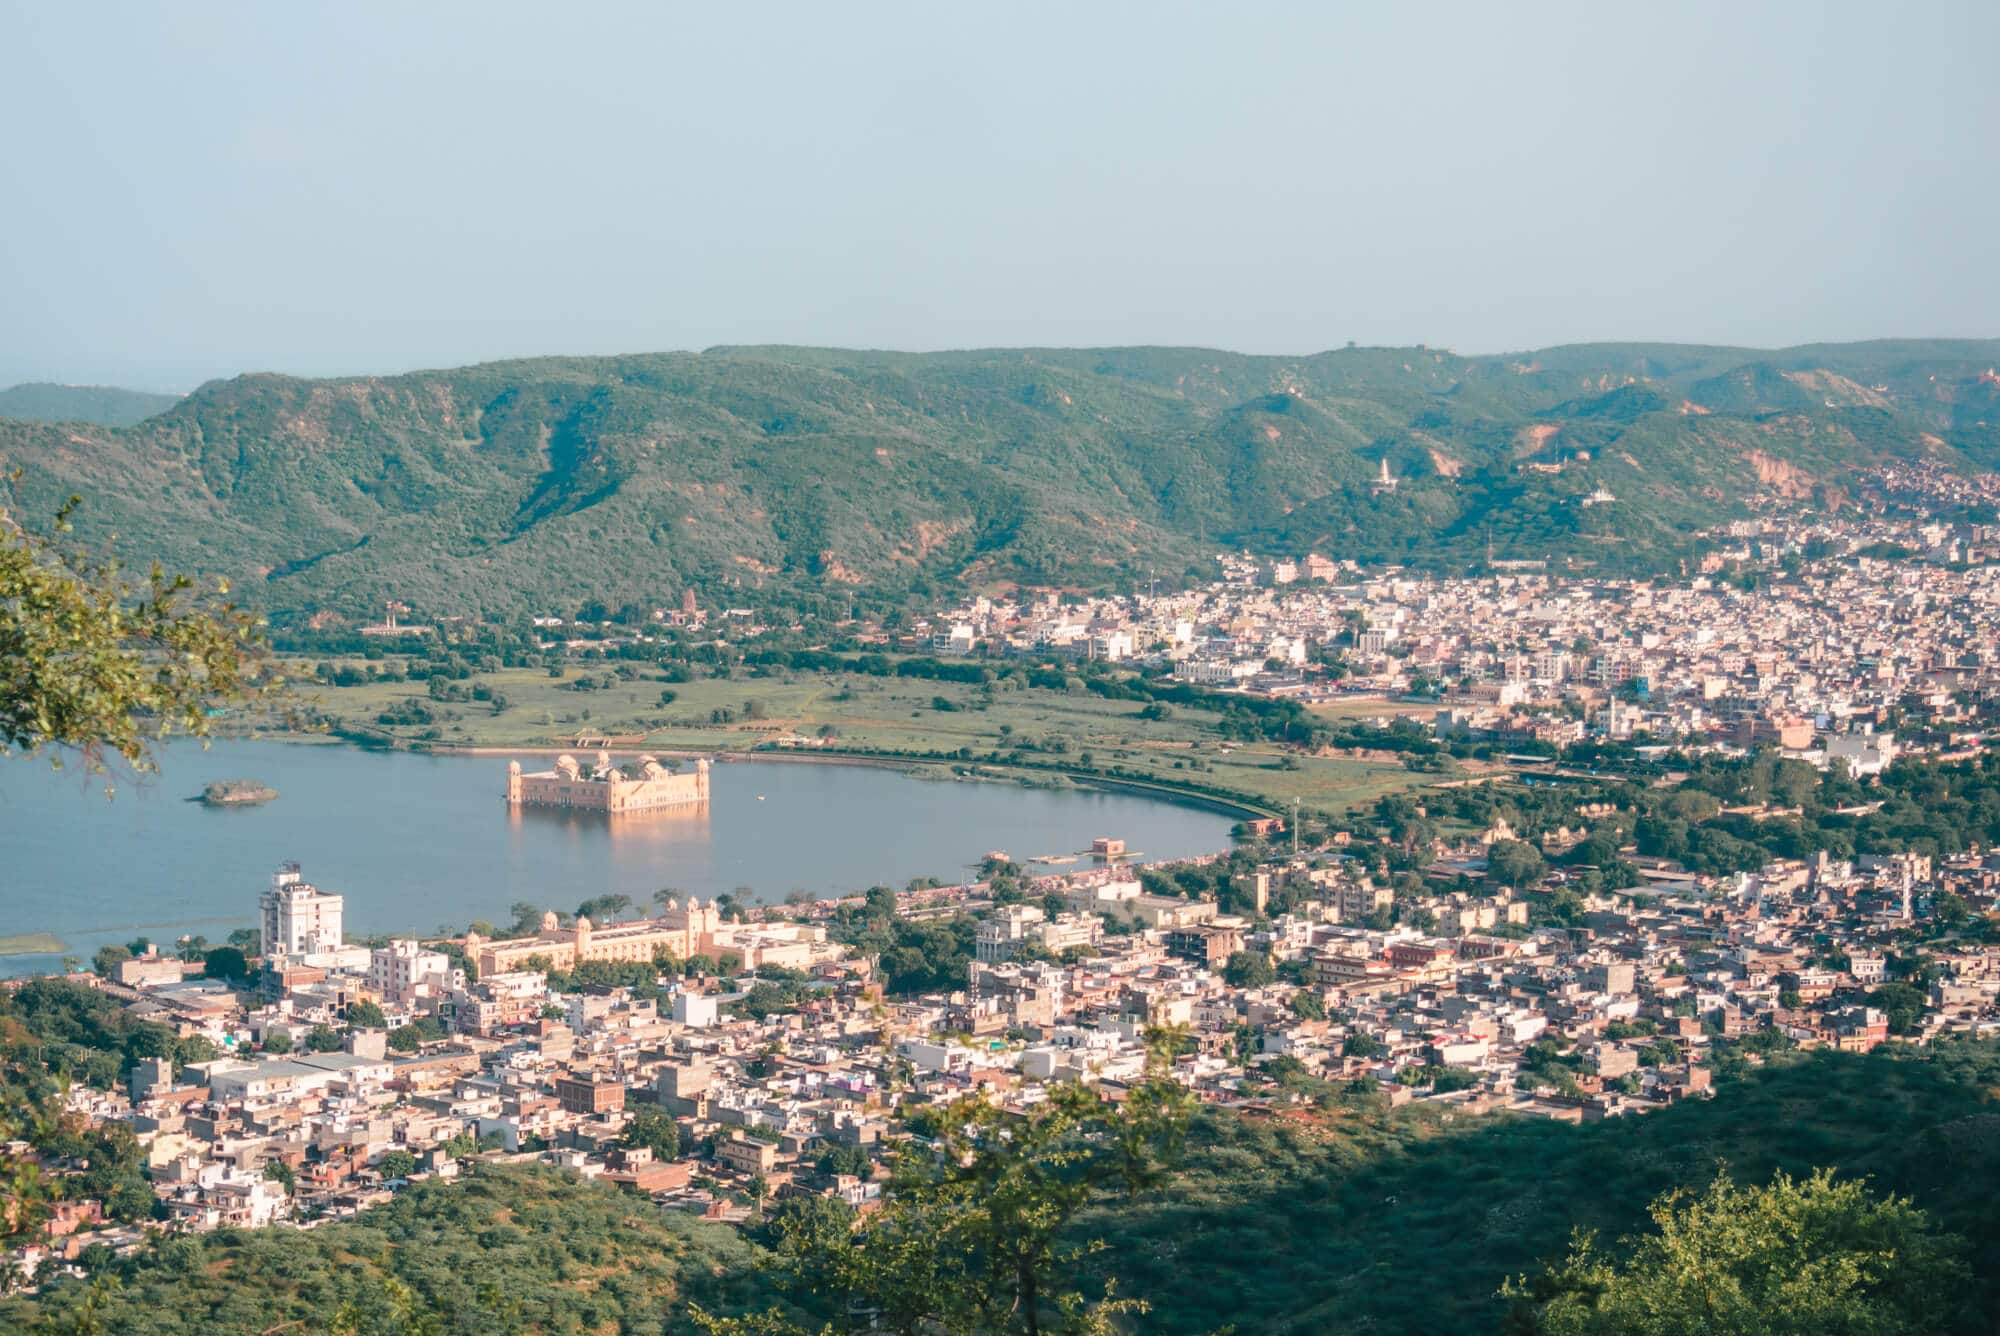 Jal Mahal seen from Nahargarh Fort - The best sunset view point in Jaipur, India